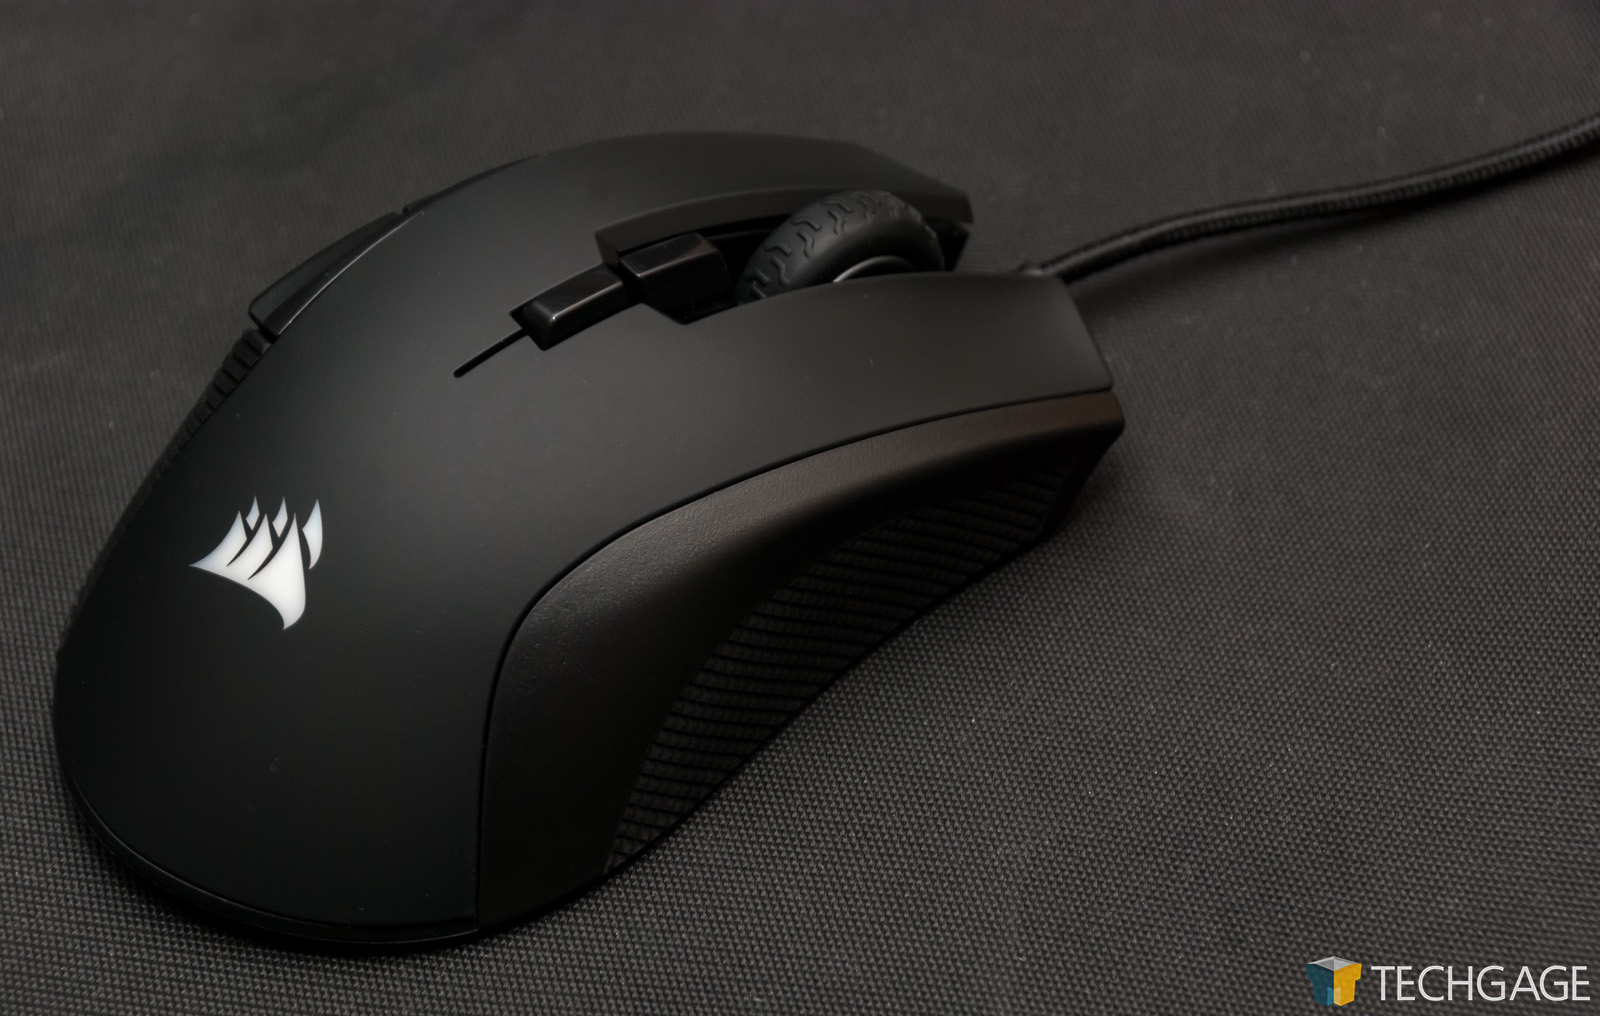 Corsair Gaming Mouse Roundup: Harpoon, M65 Elite & Ironclaw – Techgage